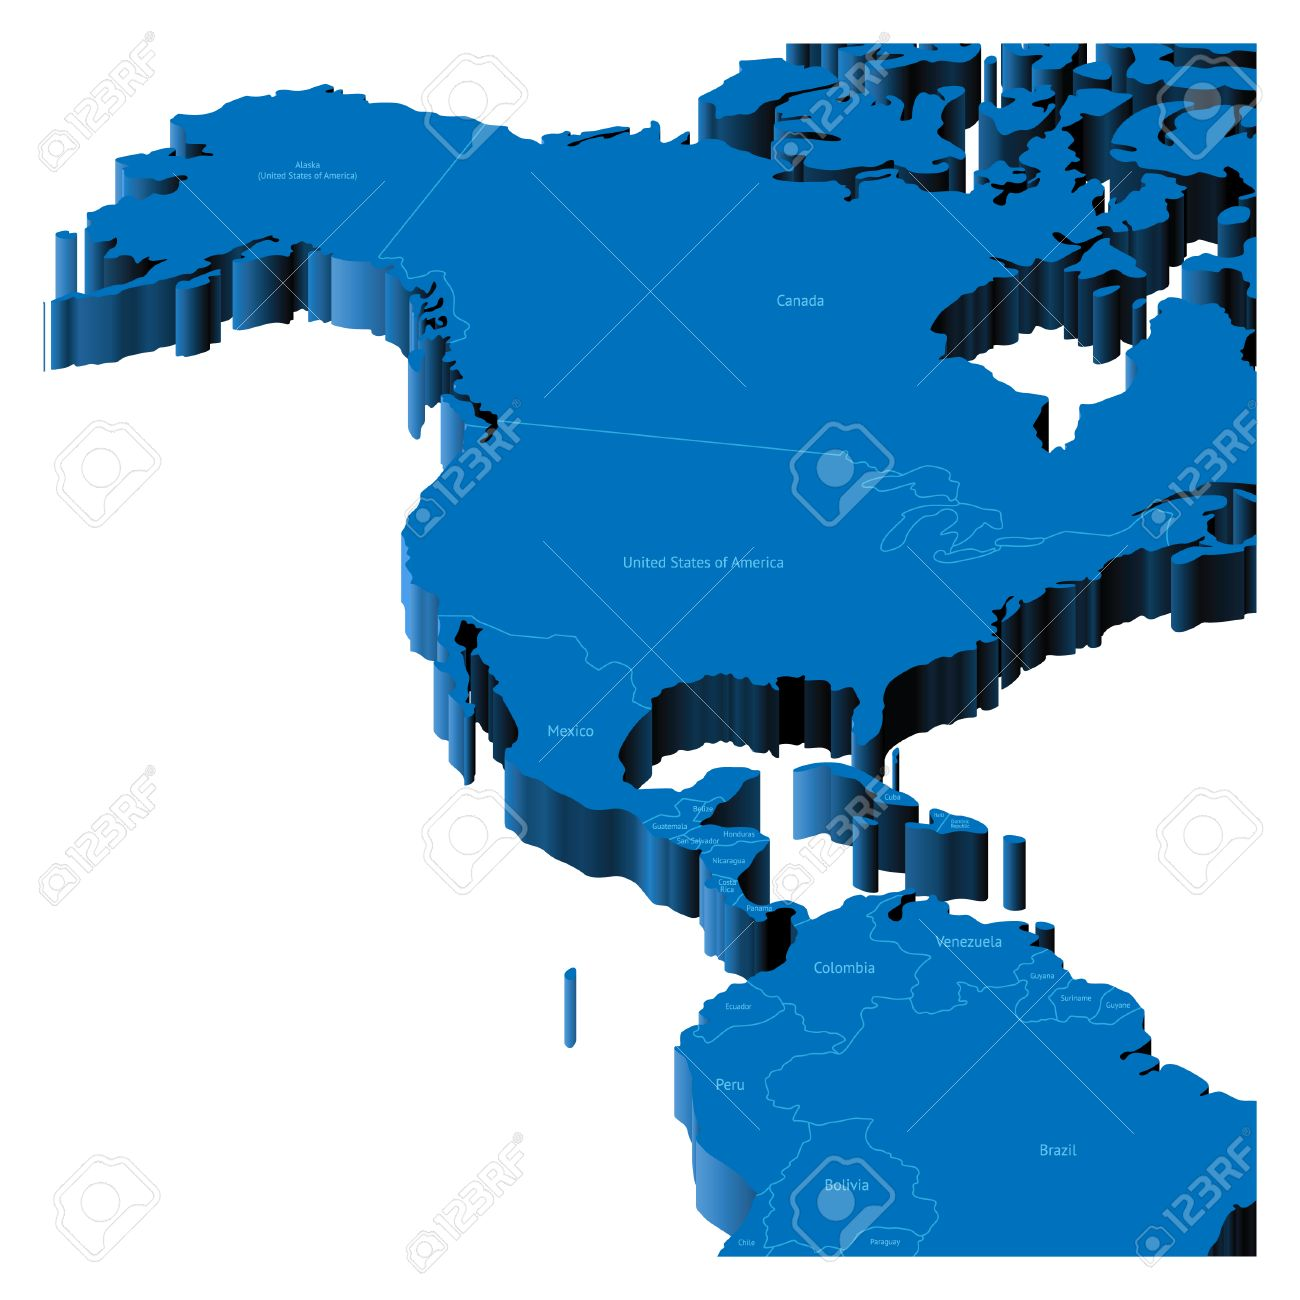 Map Of United States Alaska Central America With National - Map of united states with alaska